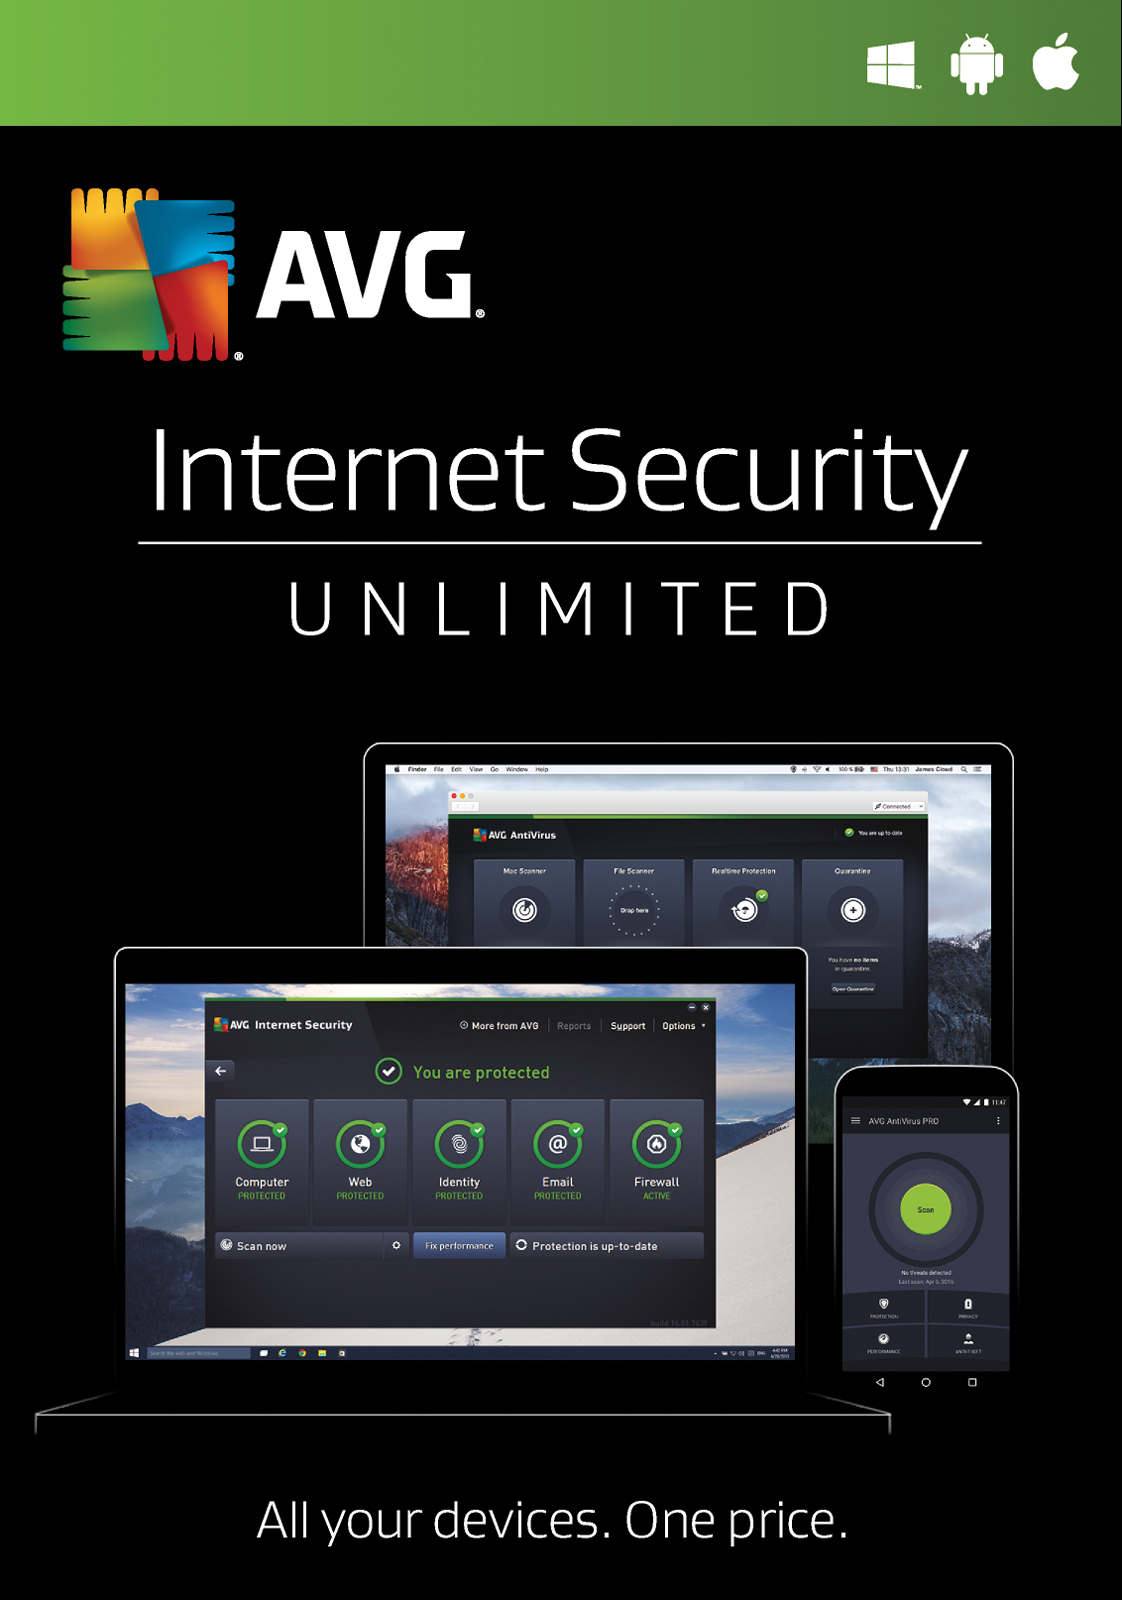 UK Daily Deals: AVG Internet Security - Save £20% for a Limited Time Only